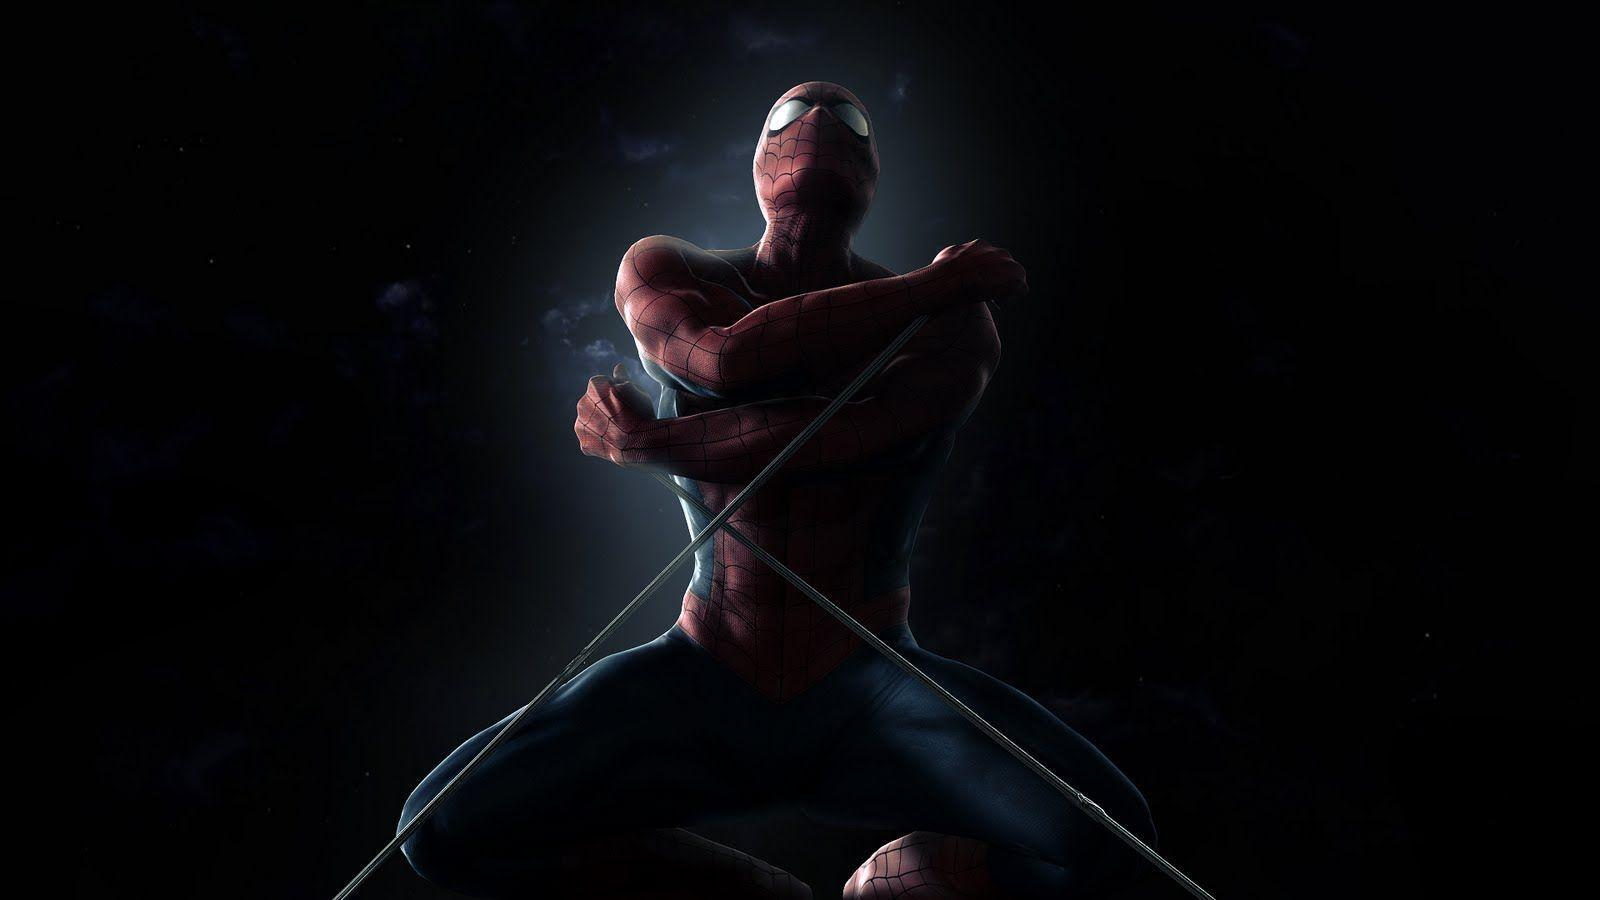 spiderman 4 hd wallpaper movie | Wallput.com